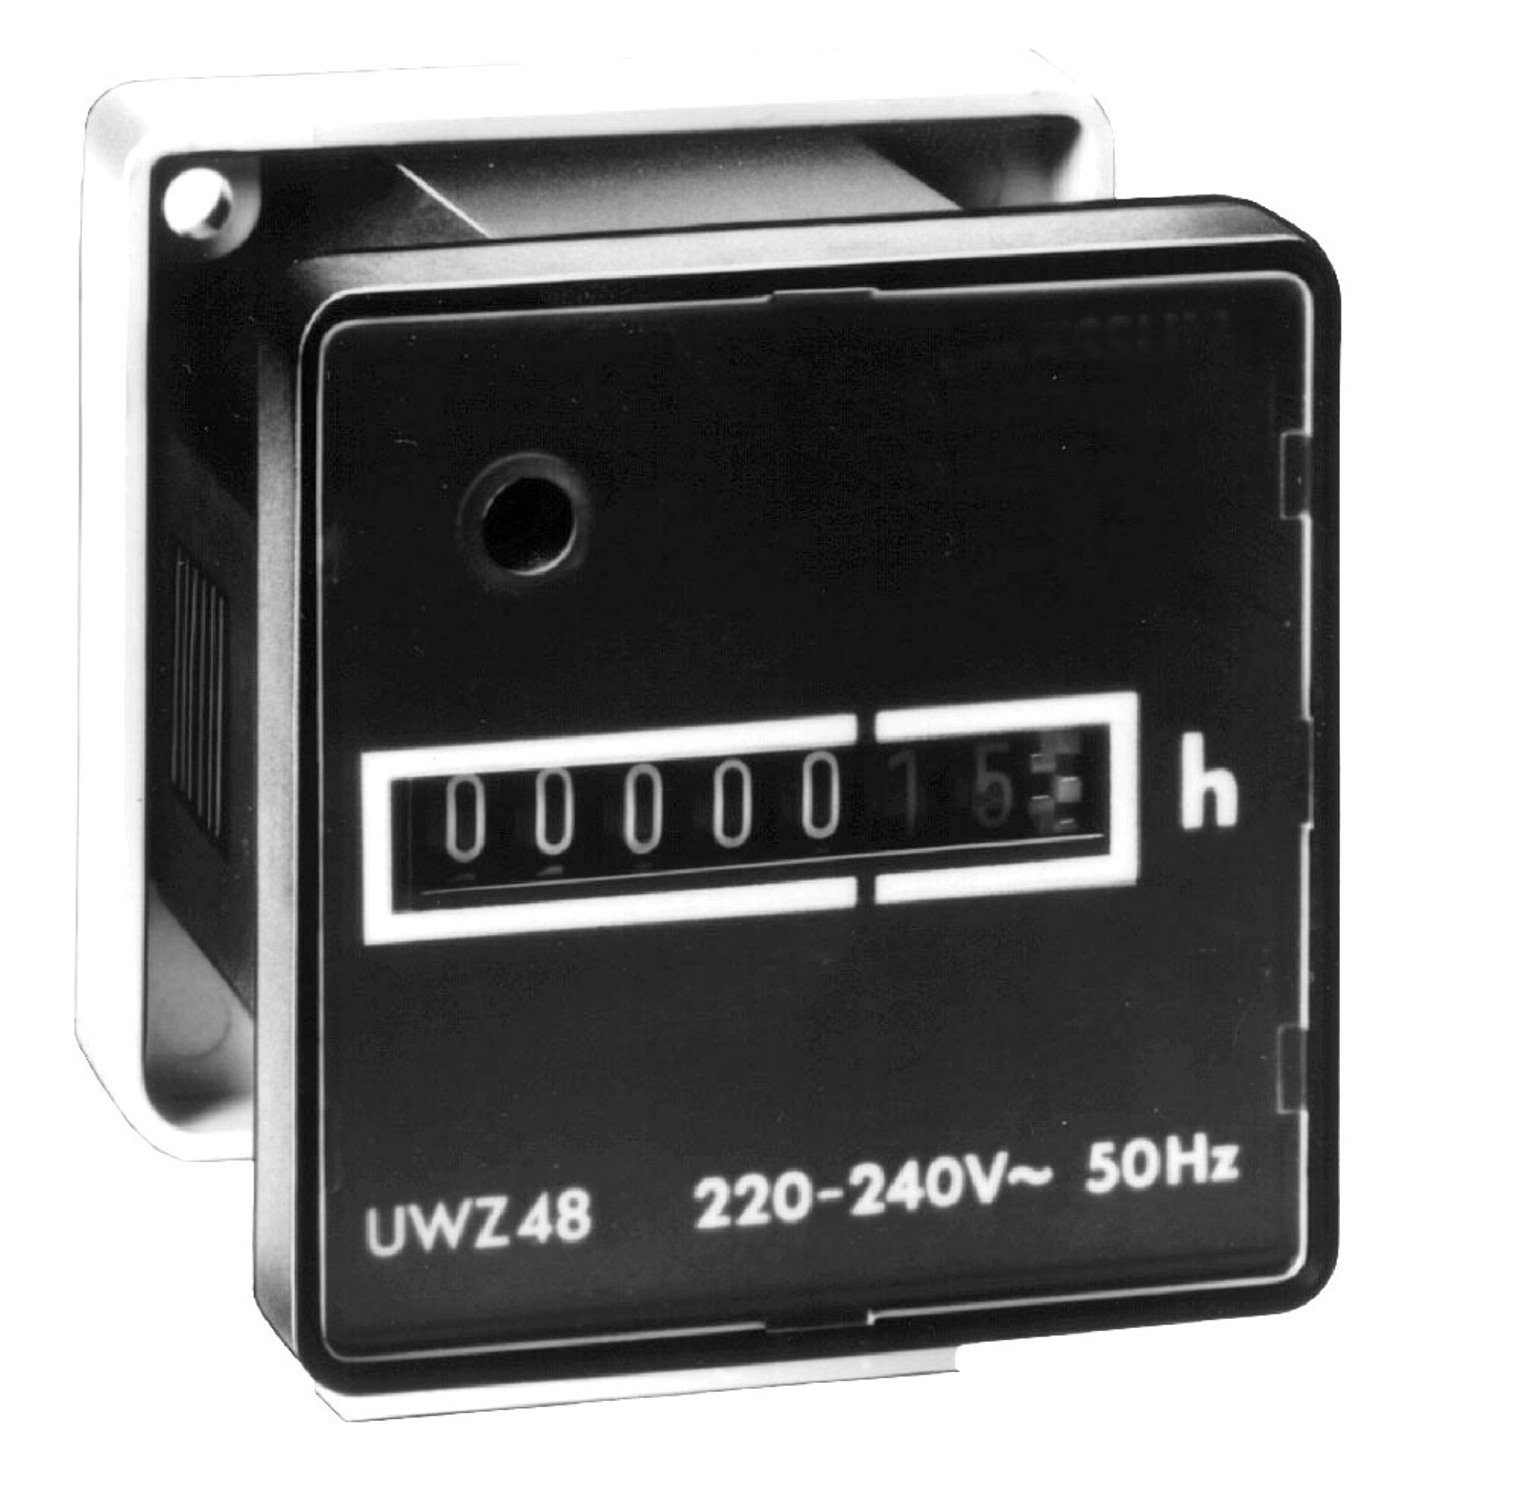 Grasslin by Intermatic UWZ48A-24U 24v, 60hz Surface Mount Screw Terminals with Terminal Cover